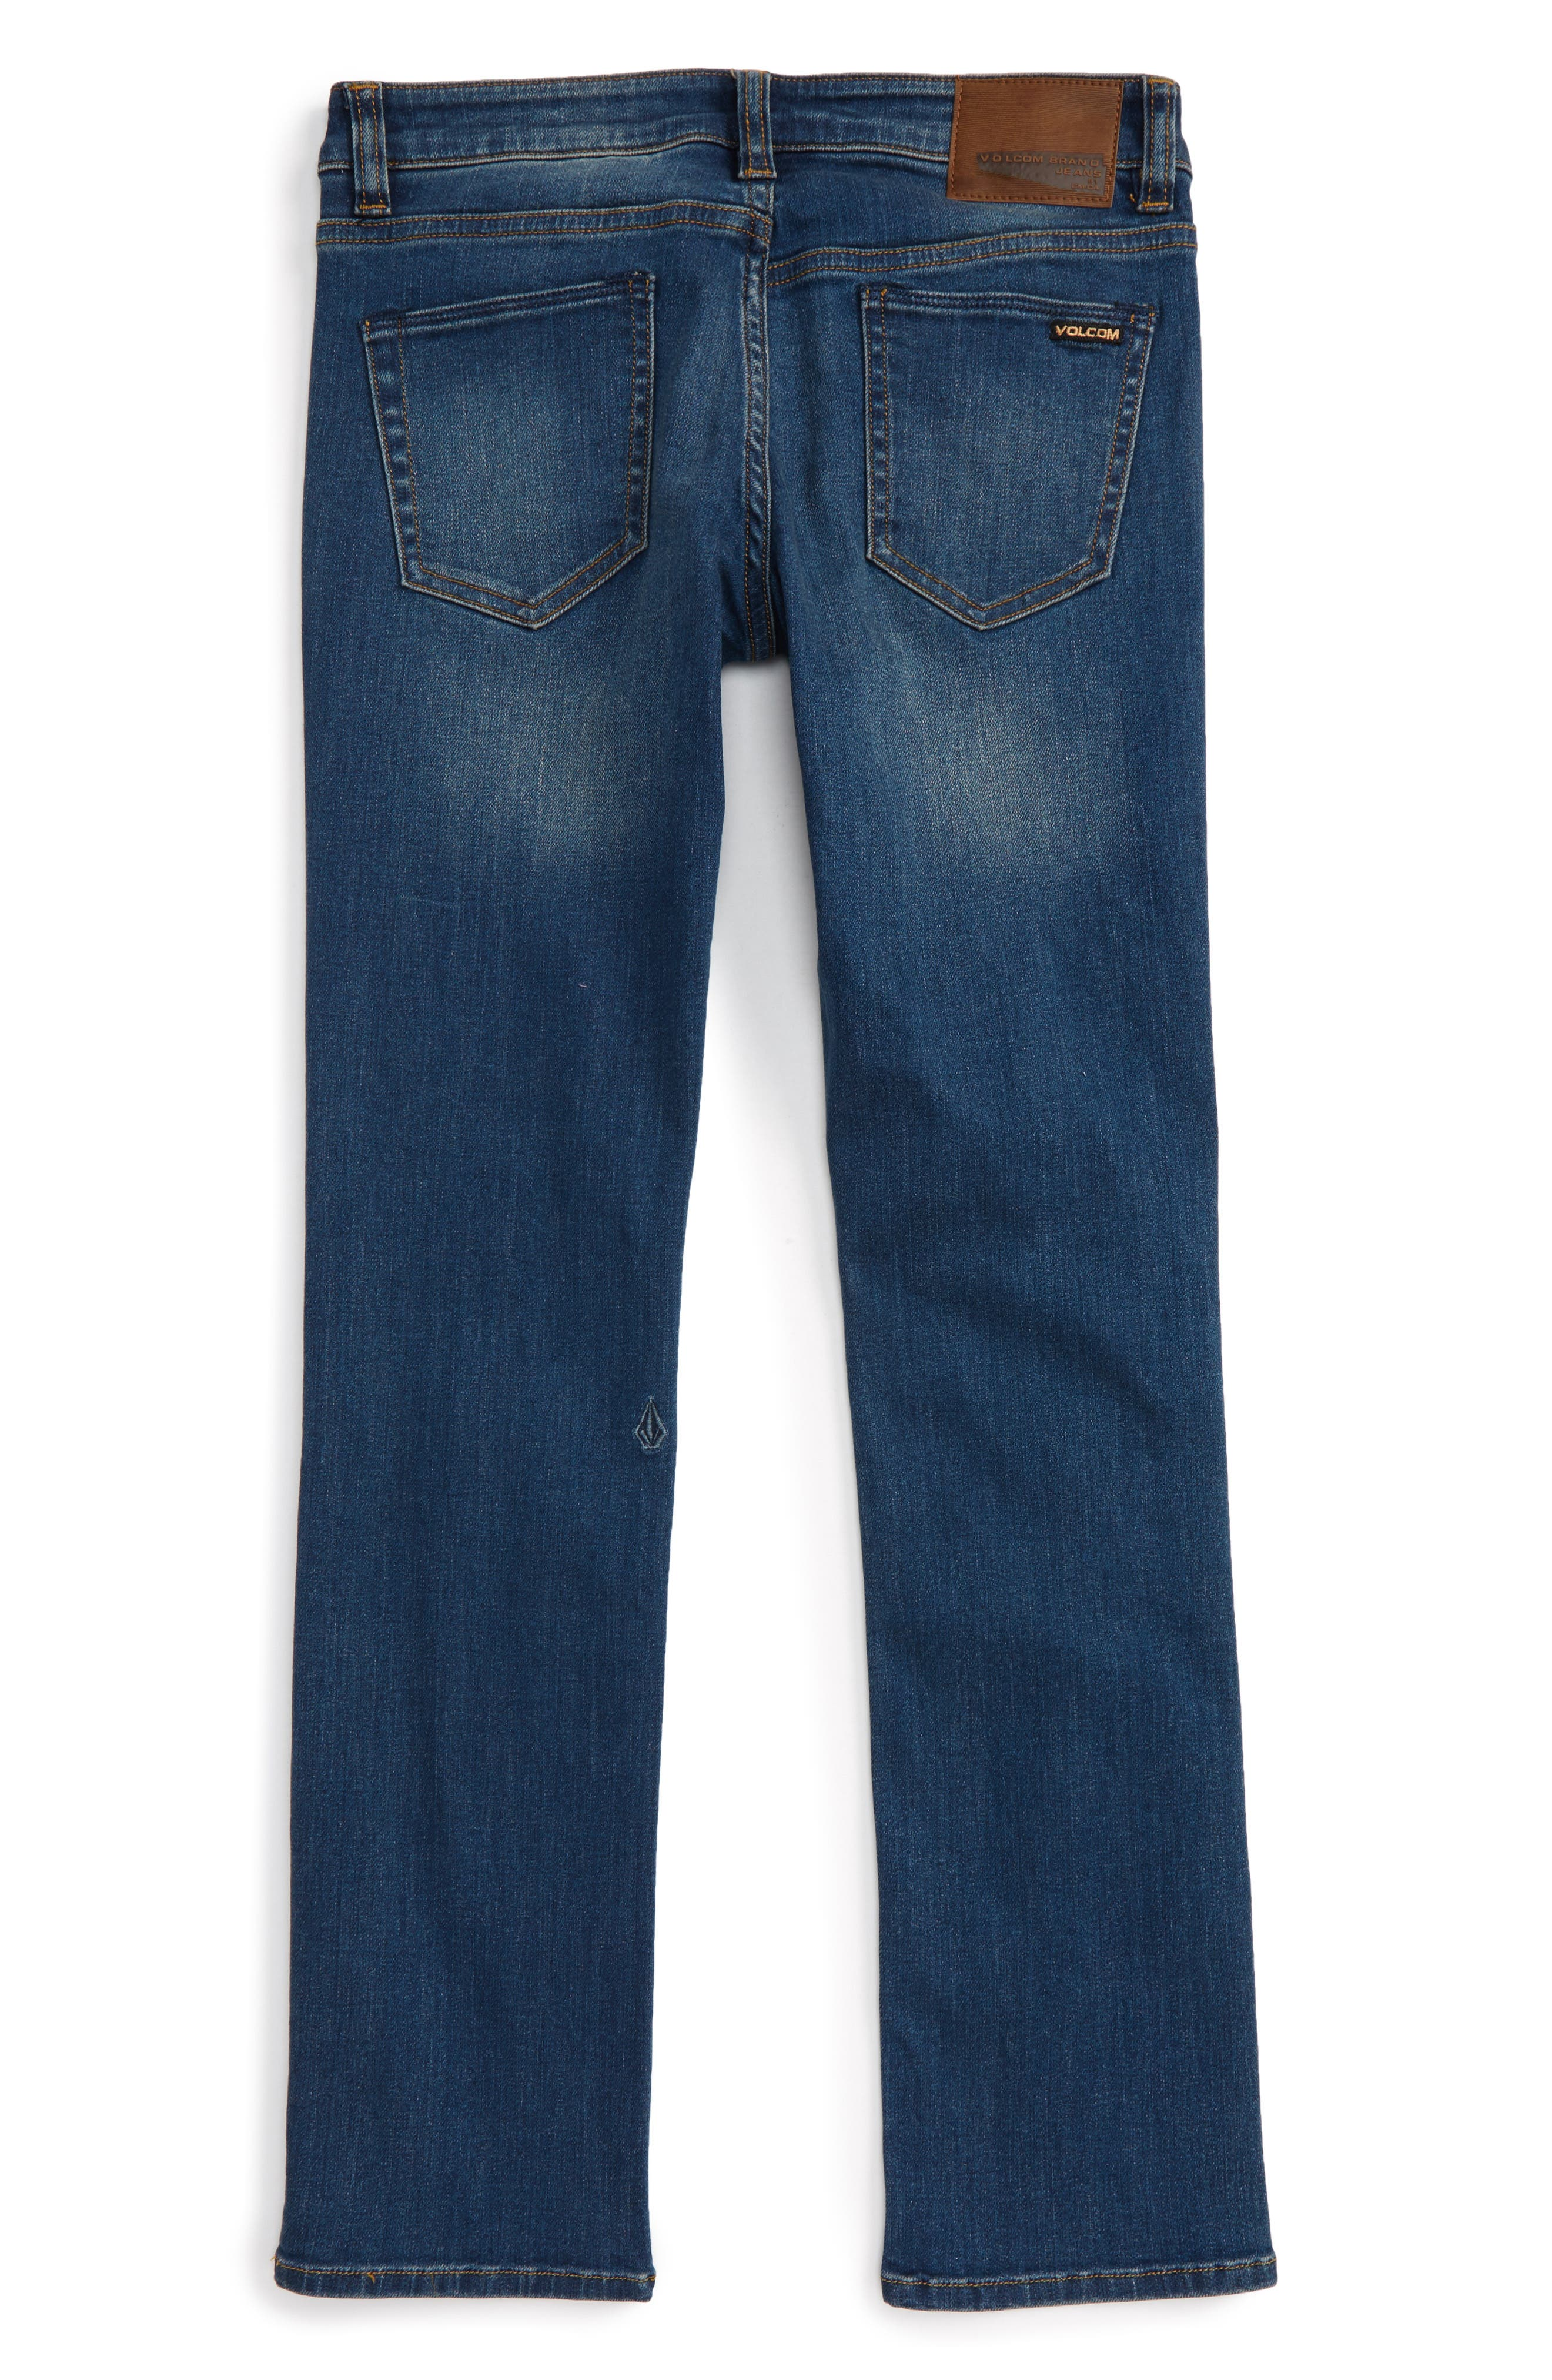 Alternate Image 2  - Volcom Vorta Slim Fit Jeans (Big Boys)